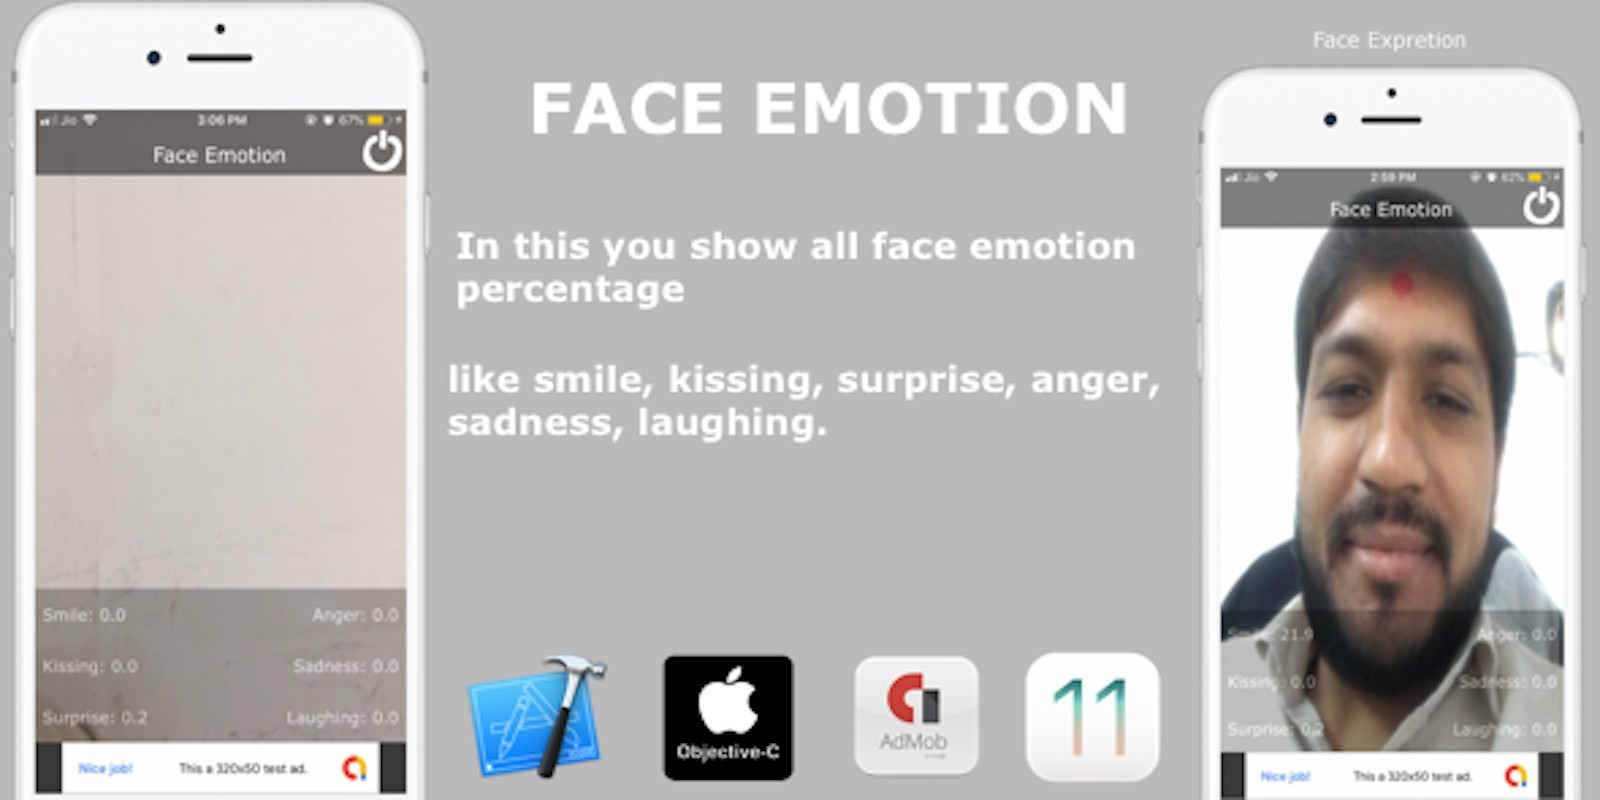 Face Emotion